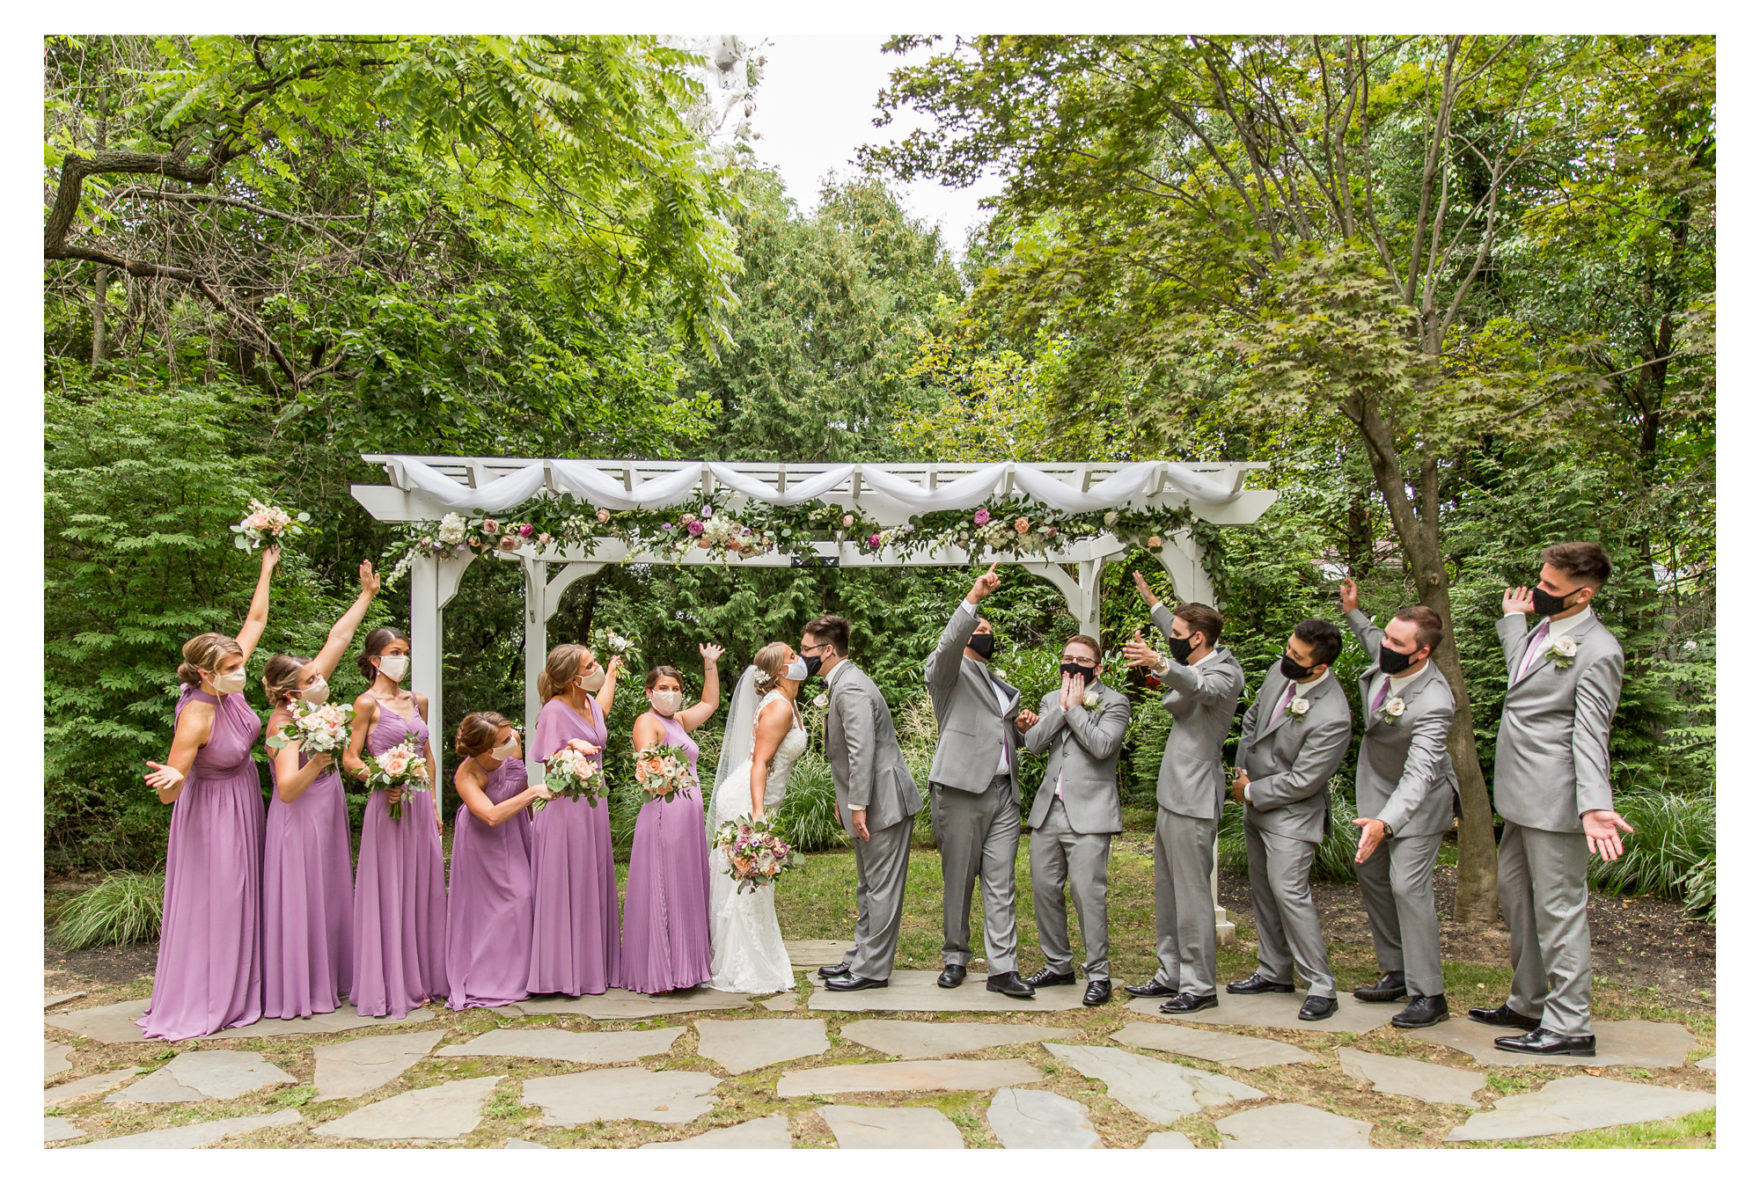 Summer wedding. Seasons at Magnolia Manor. 2020 Wedding. Covid wedding. Purple wedding. Ukulele. Outdoor reception. Bistro lights reception.